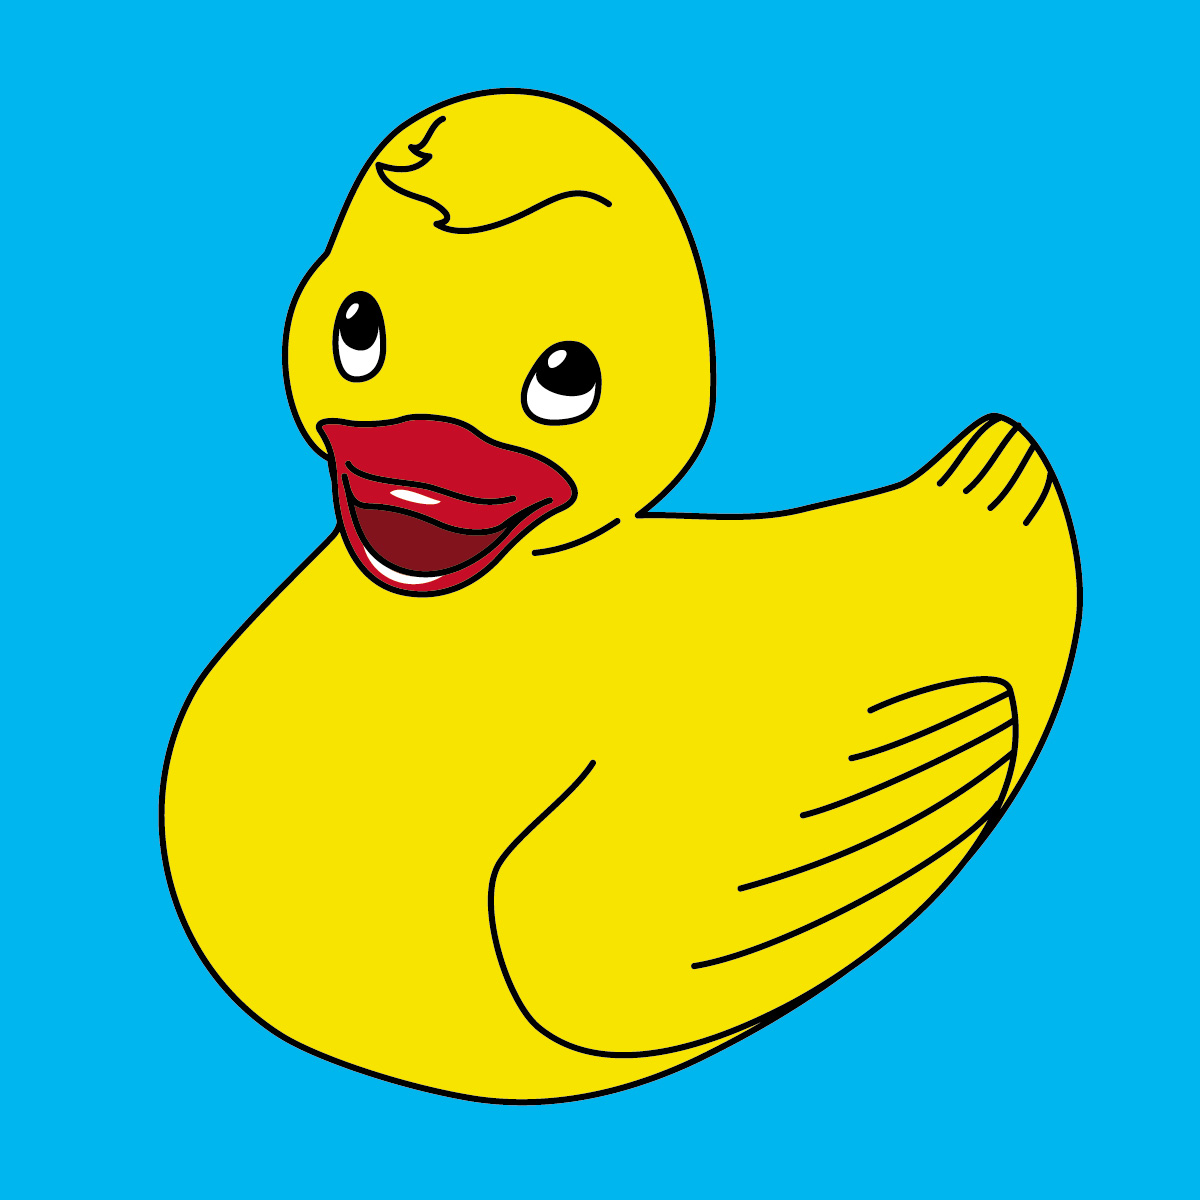 Free Animated Rubber Duckie Clipart Clipart Best